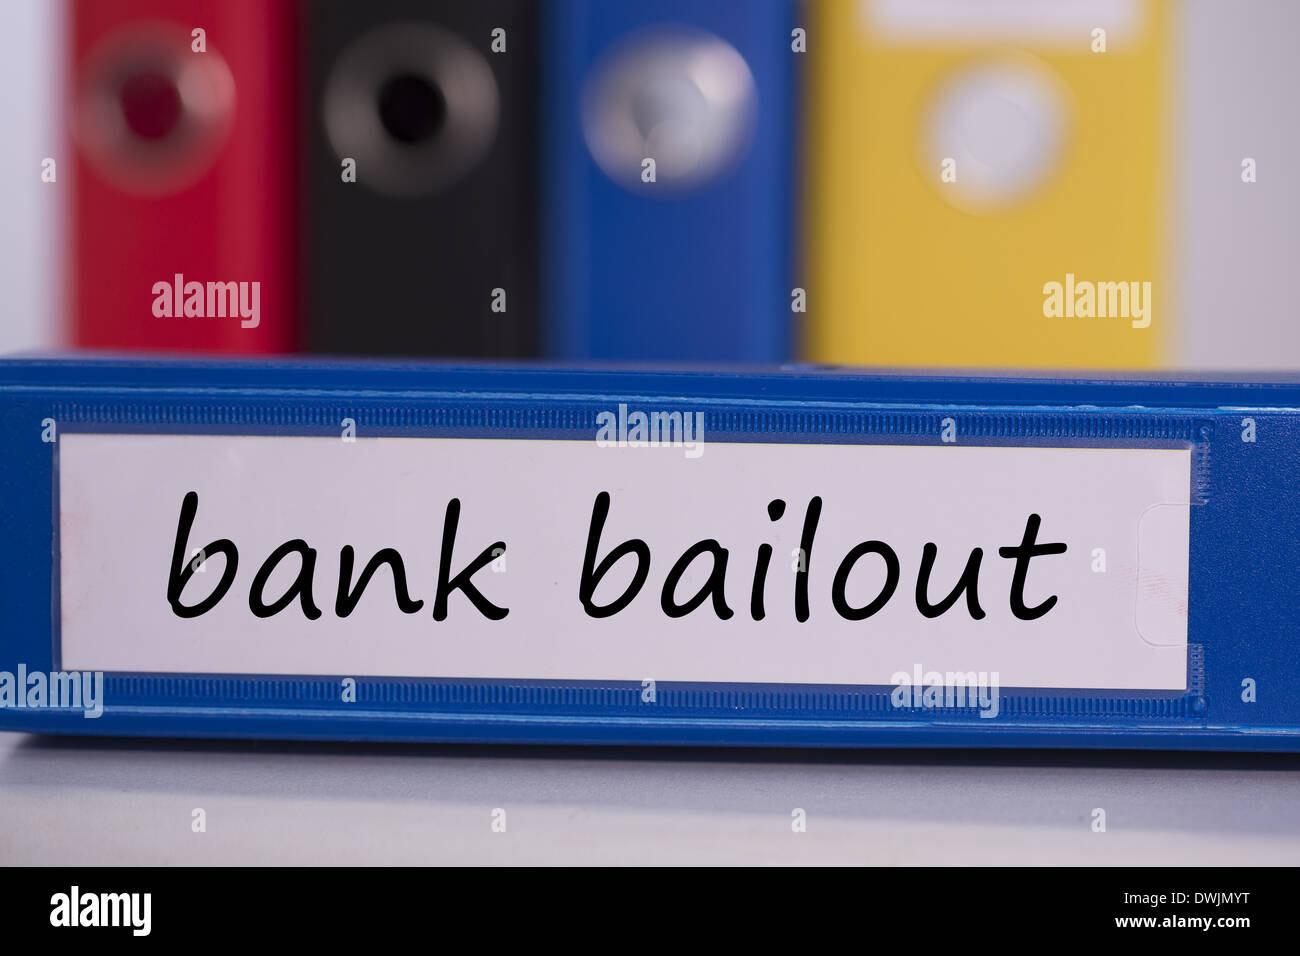 Bank bailout on blue business binder - Stock Image